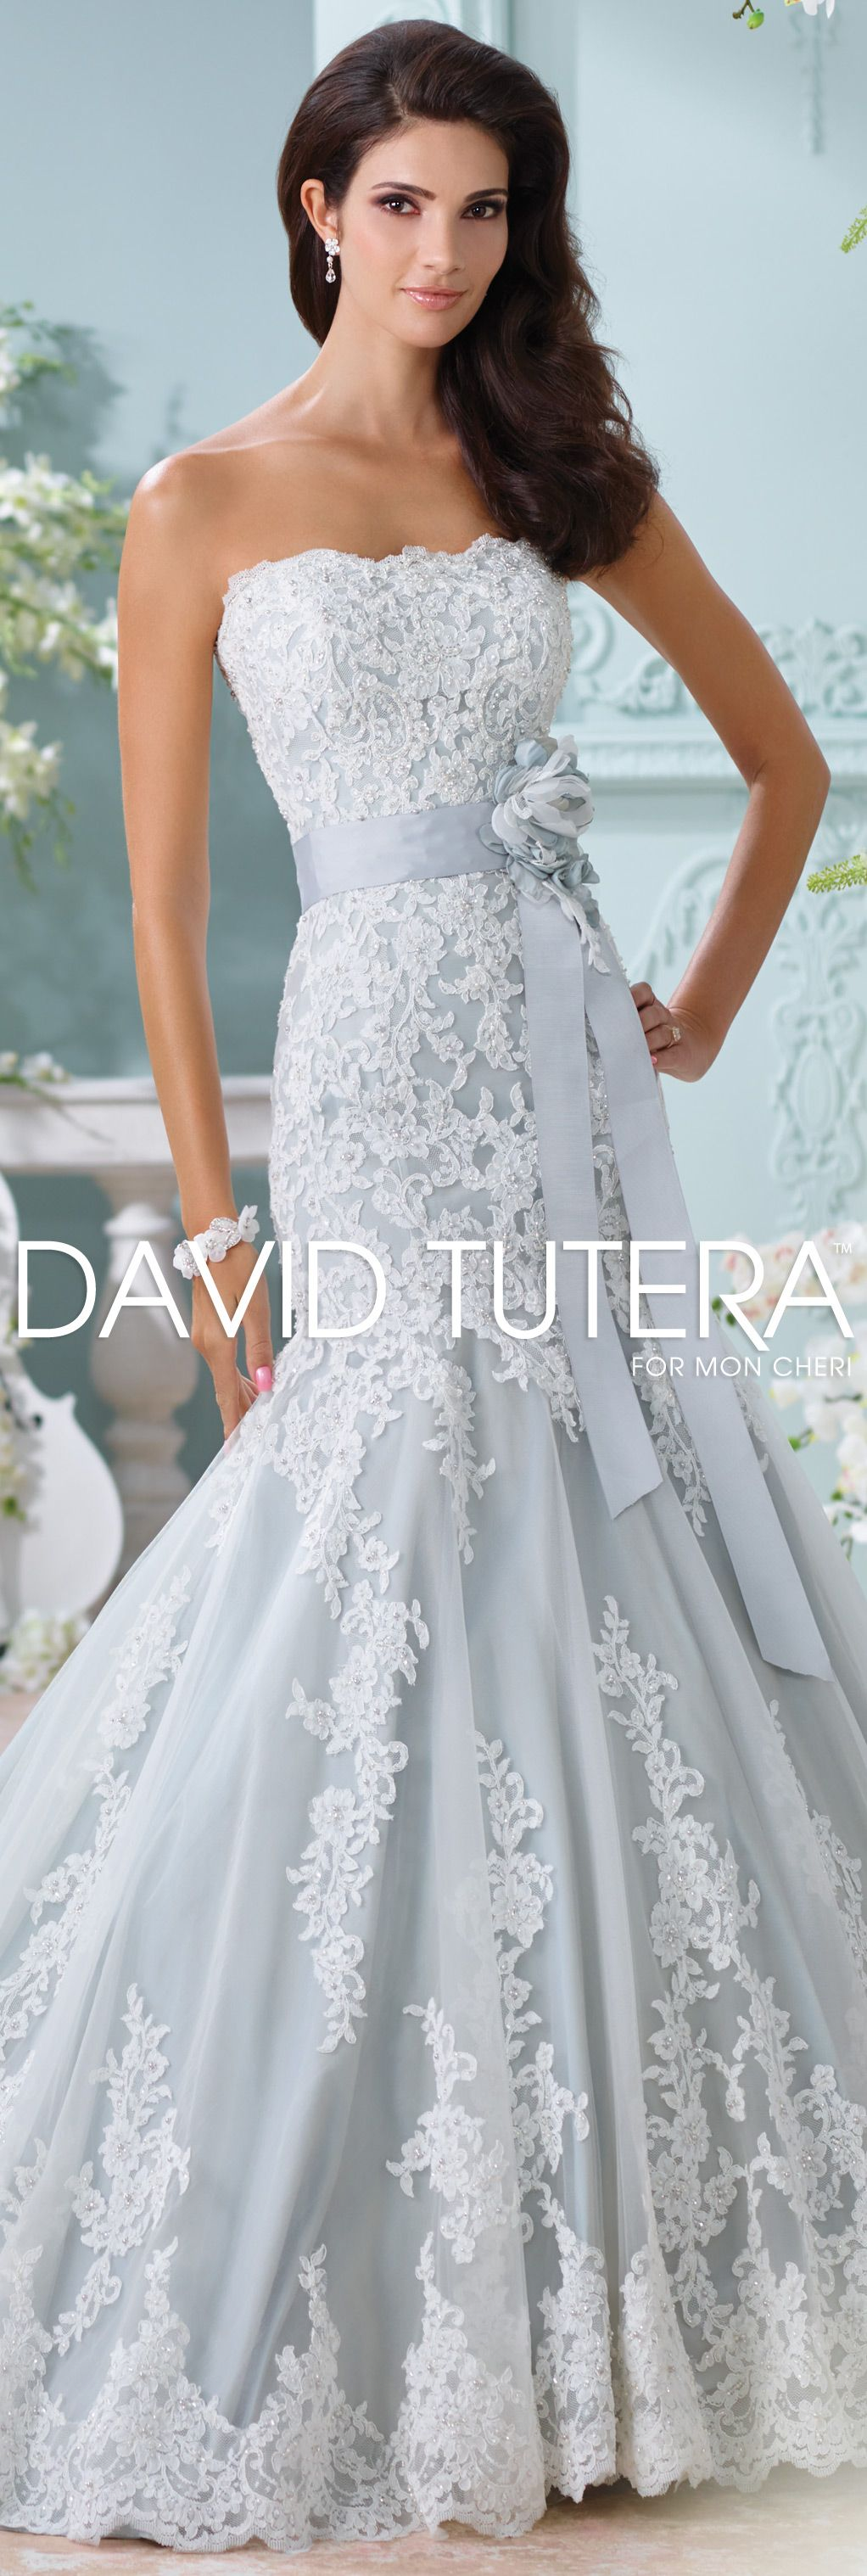 Wedding dresses u spring david tutera gowns and spring